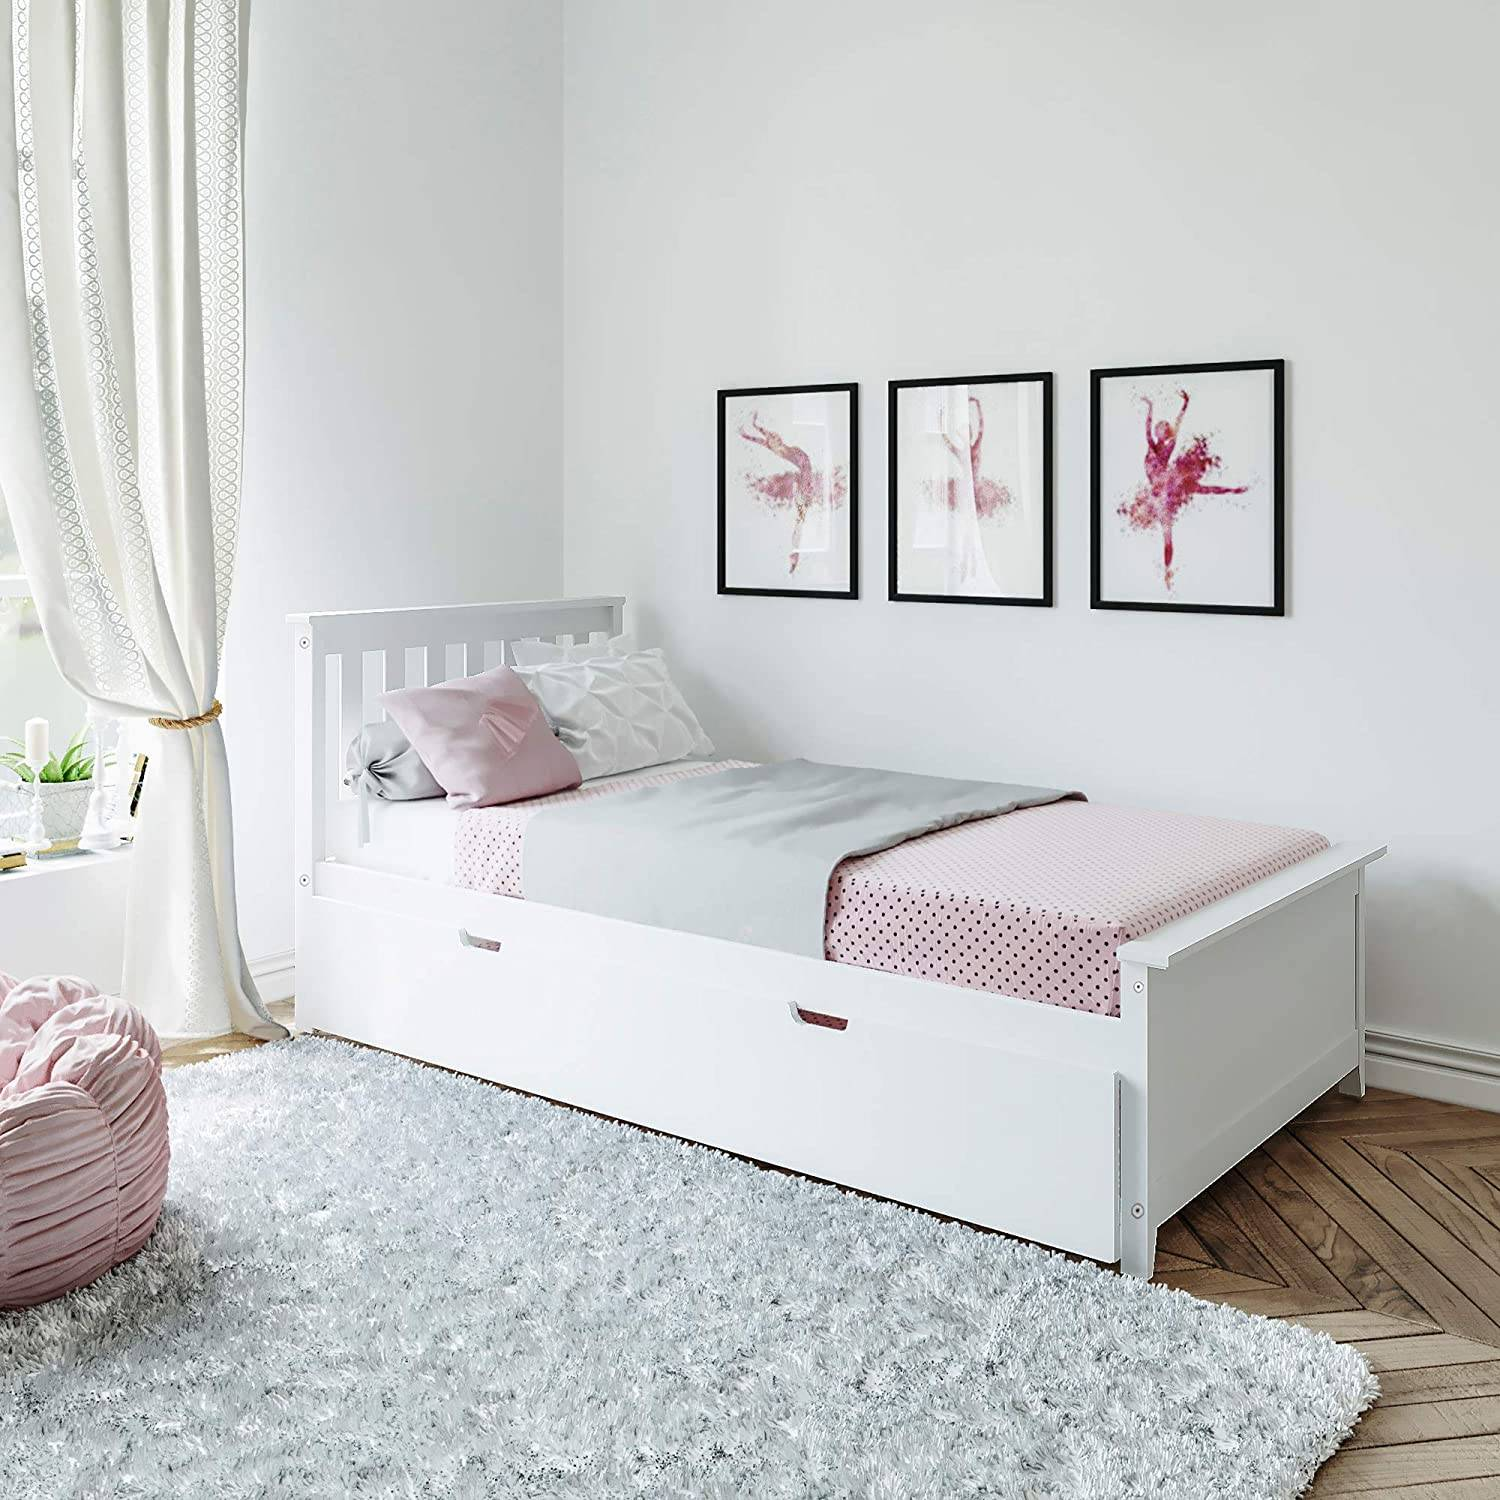 Picture of: Best Trundle Beds The Sleep Judge